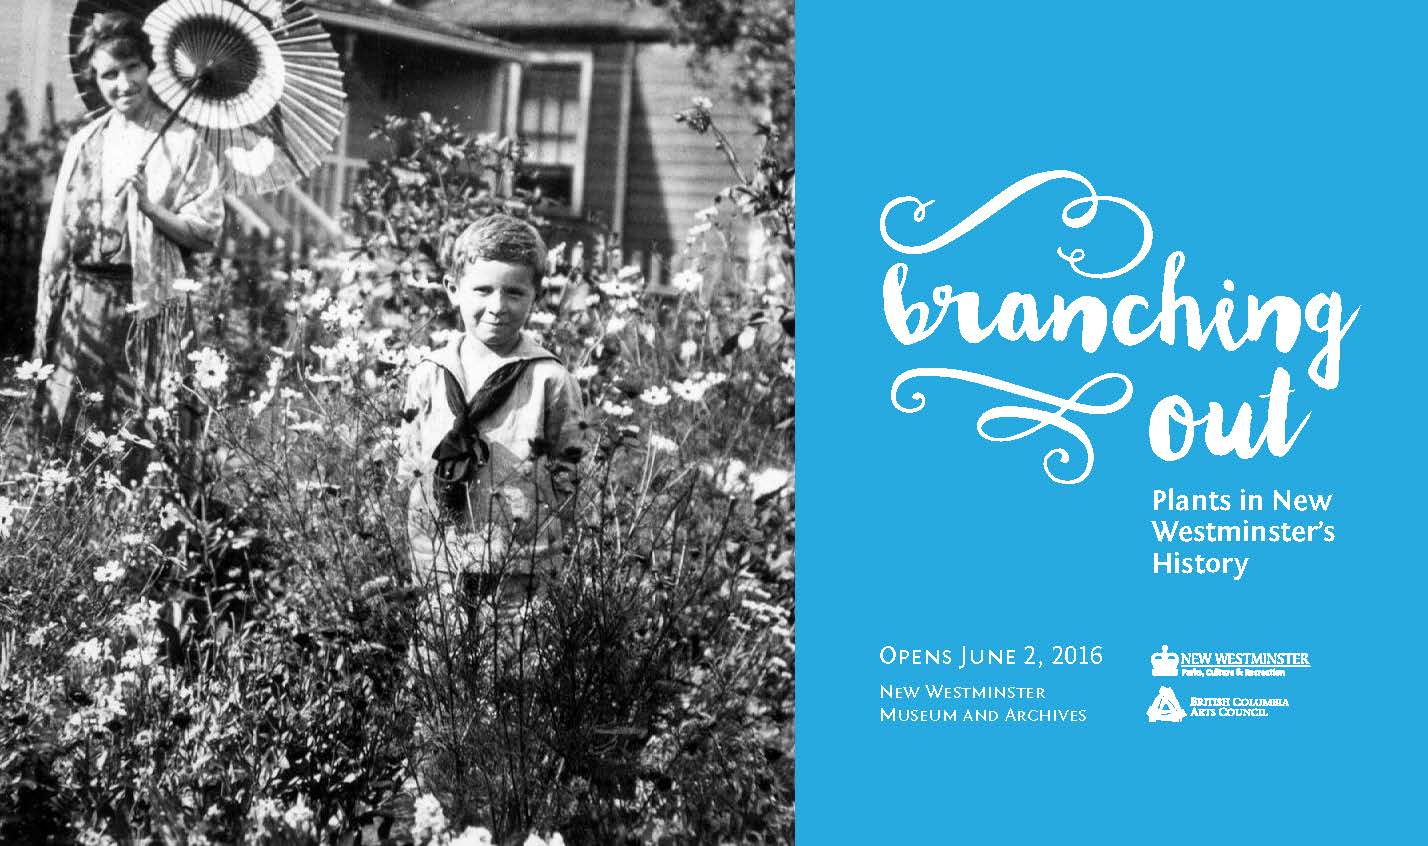 Branching Out Plant Exhibition Poster